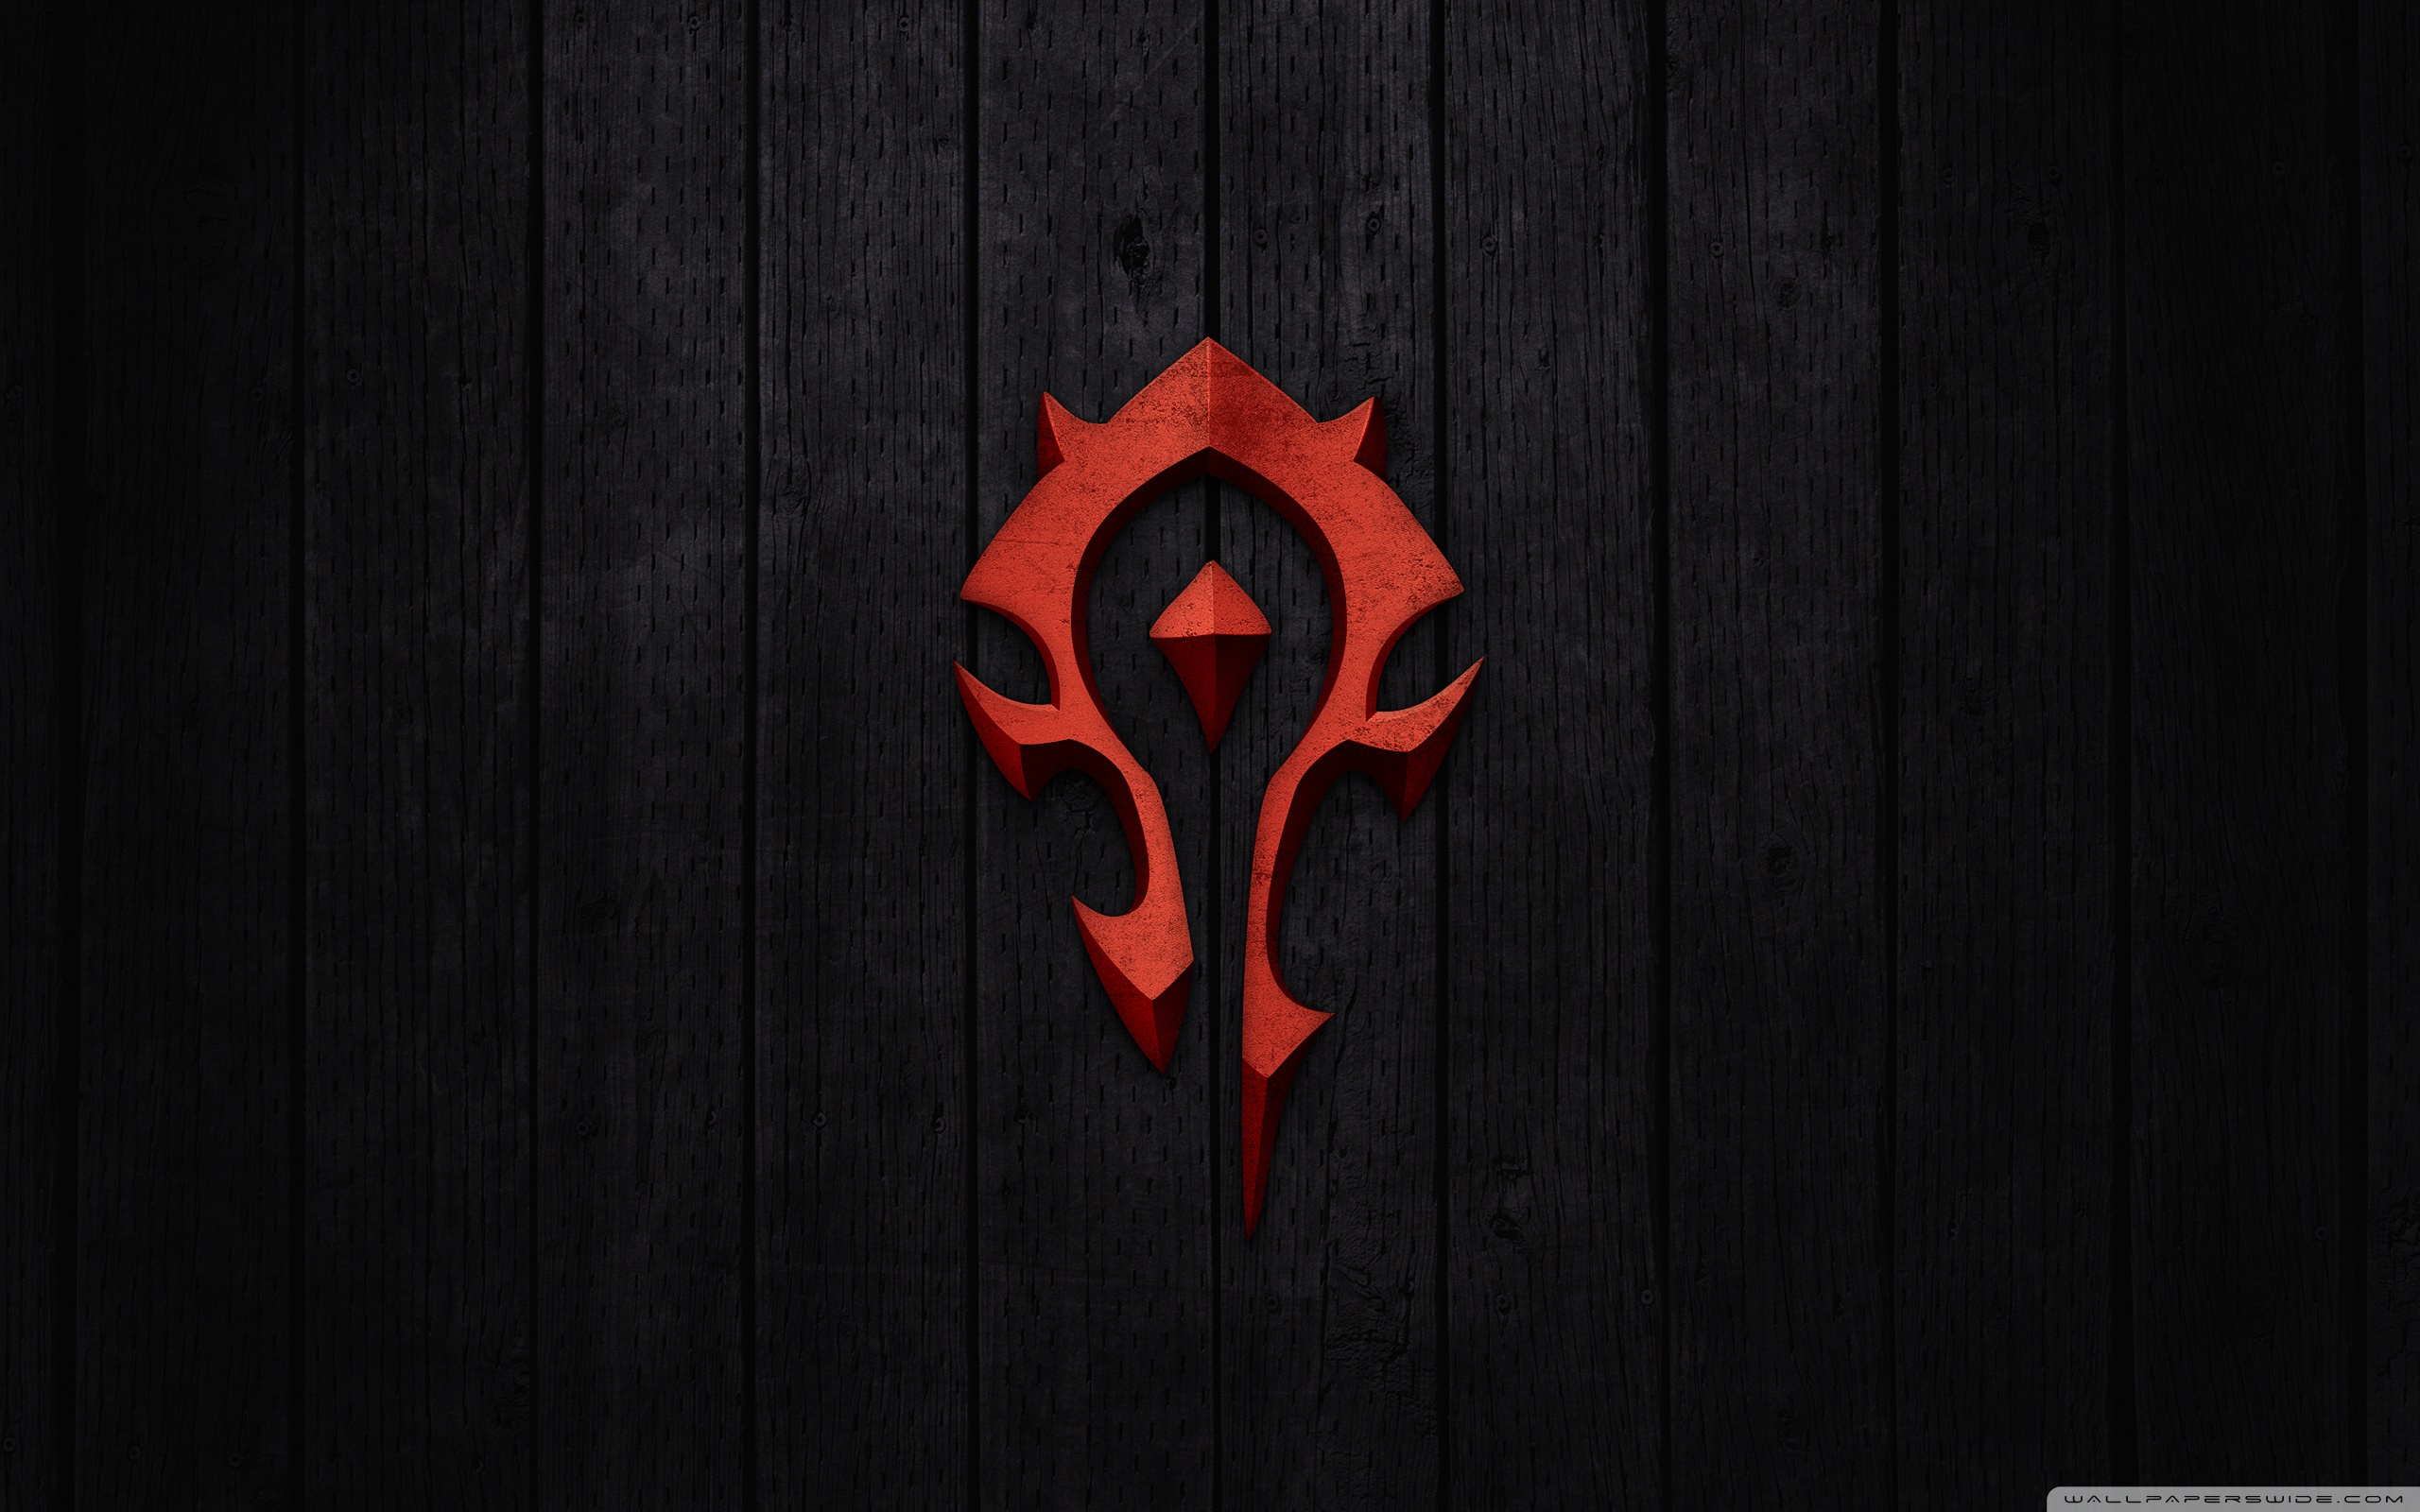 WallpapersWide com | World Of Warcraft HD Desktop Wallpapers for